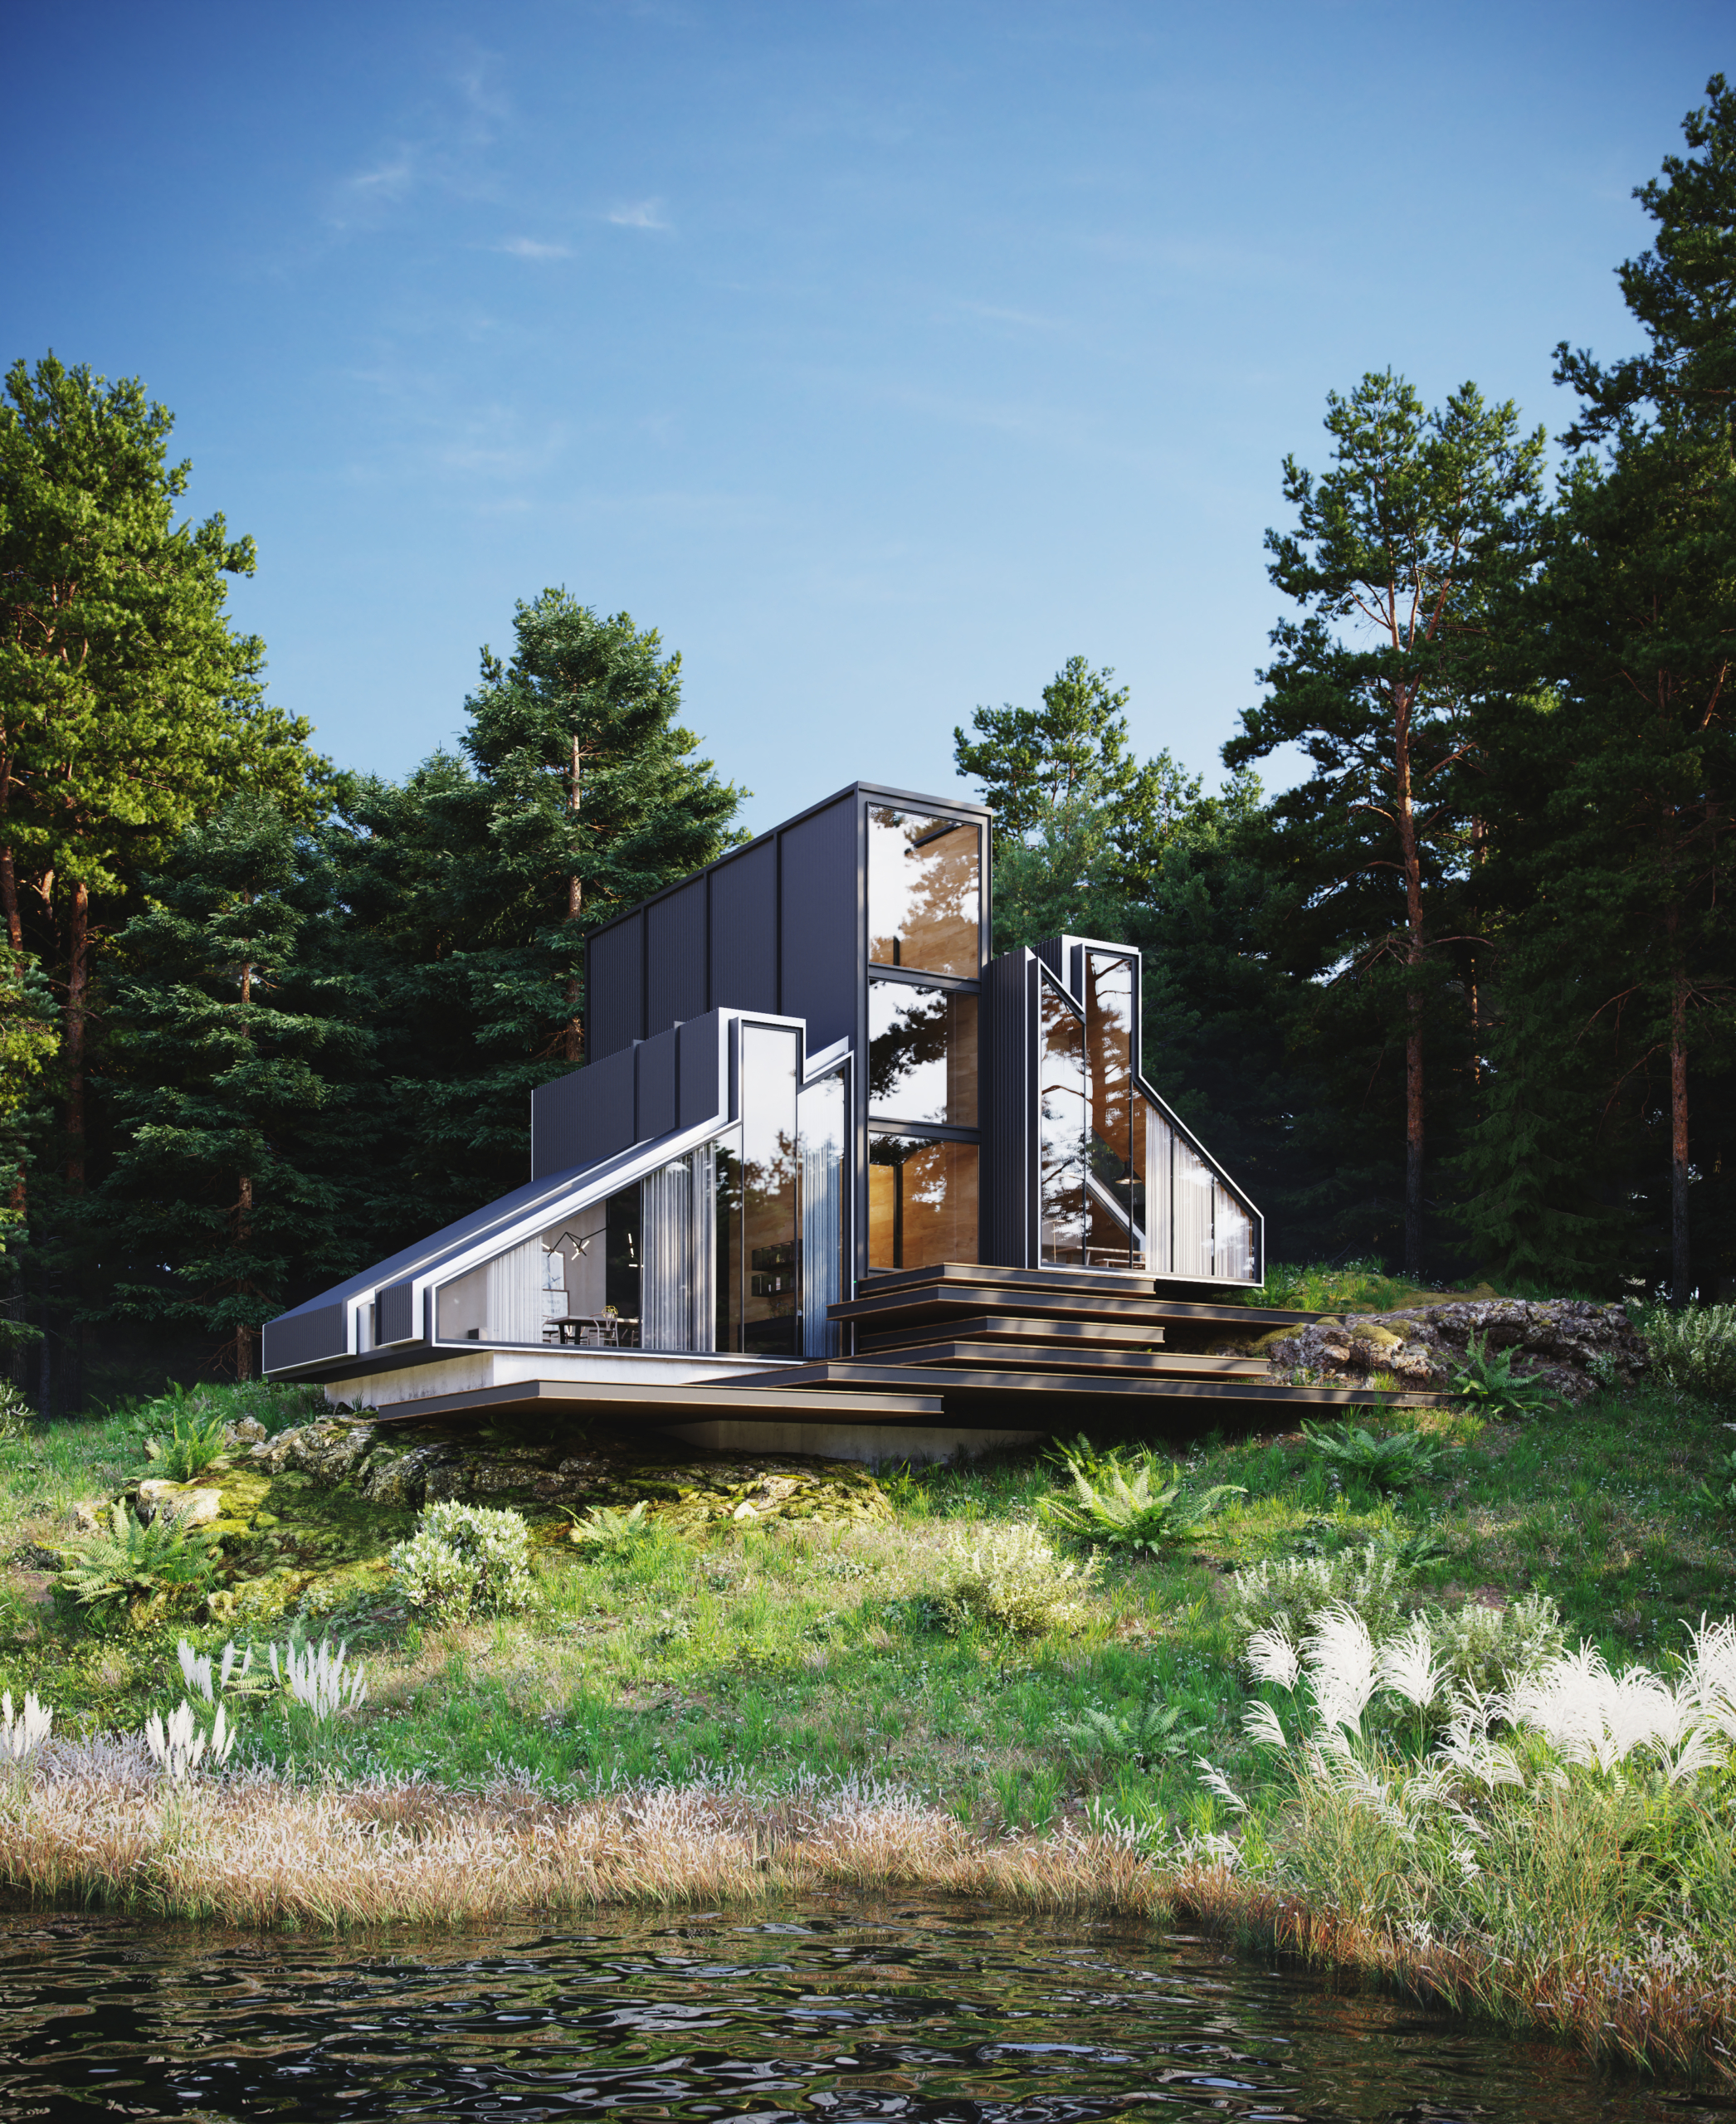 3d-rendering-House-in-forest-image